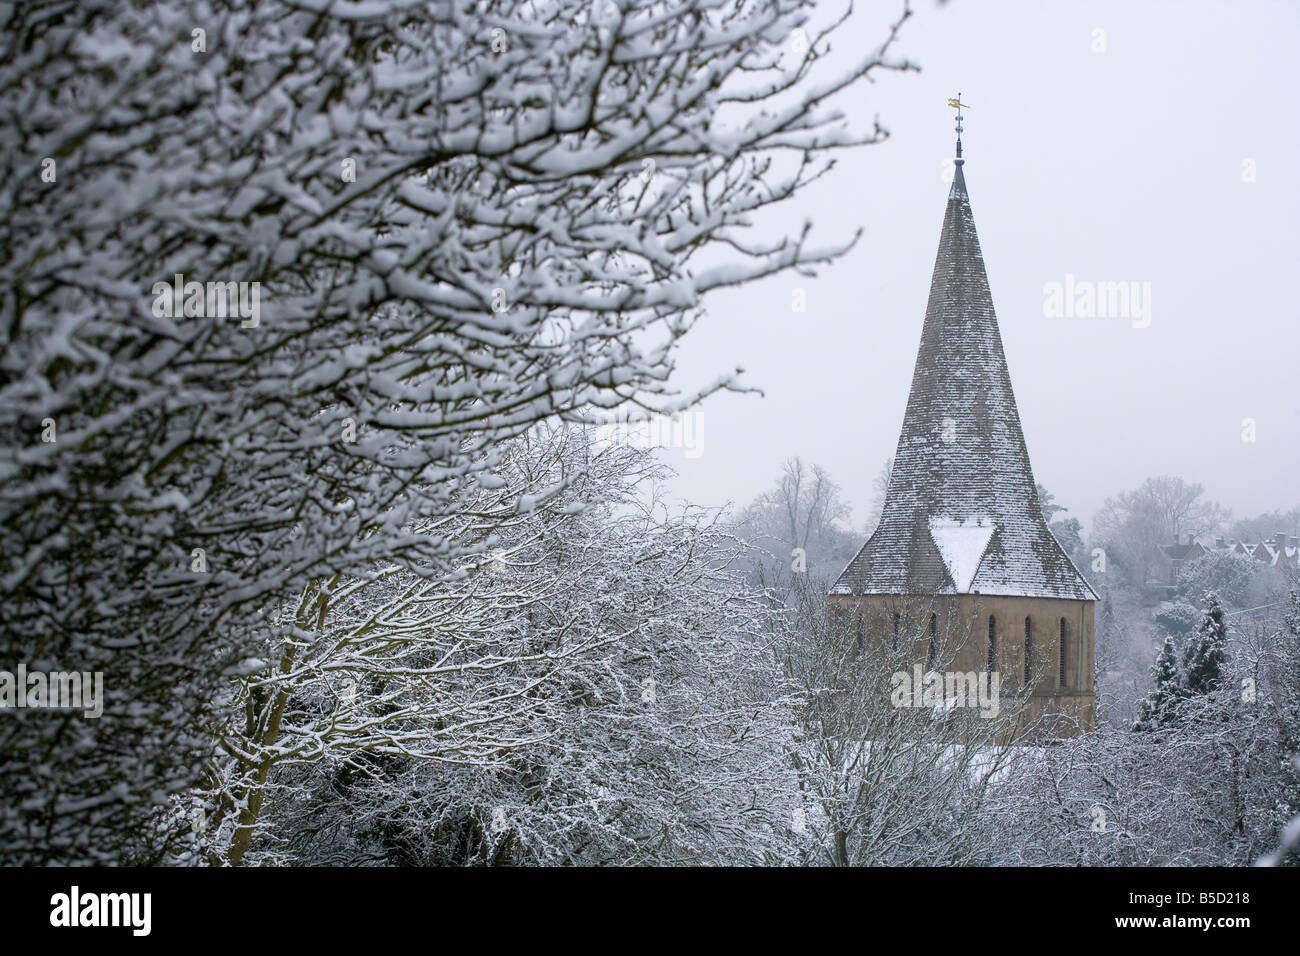 Shere church in snow, often used as a film location, Surrey, England, Europe - Stock Image